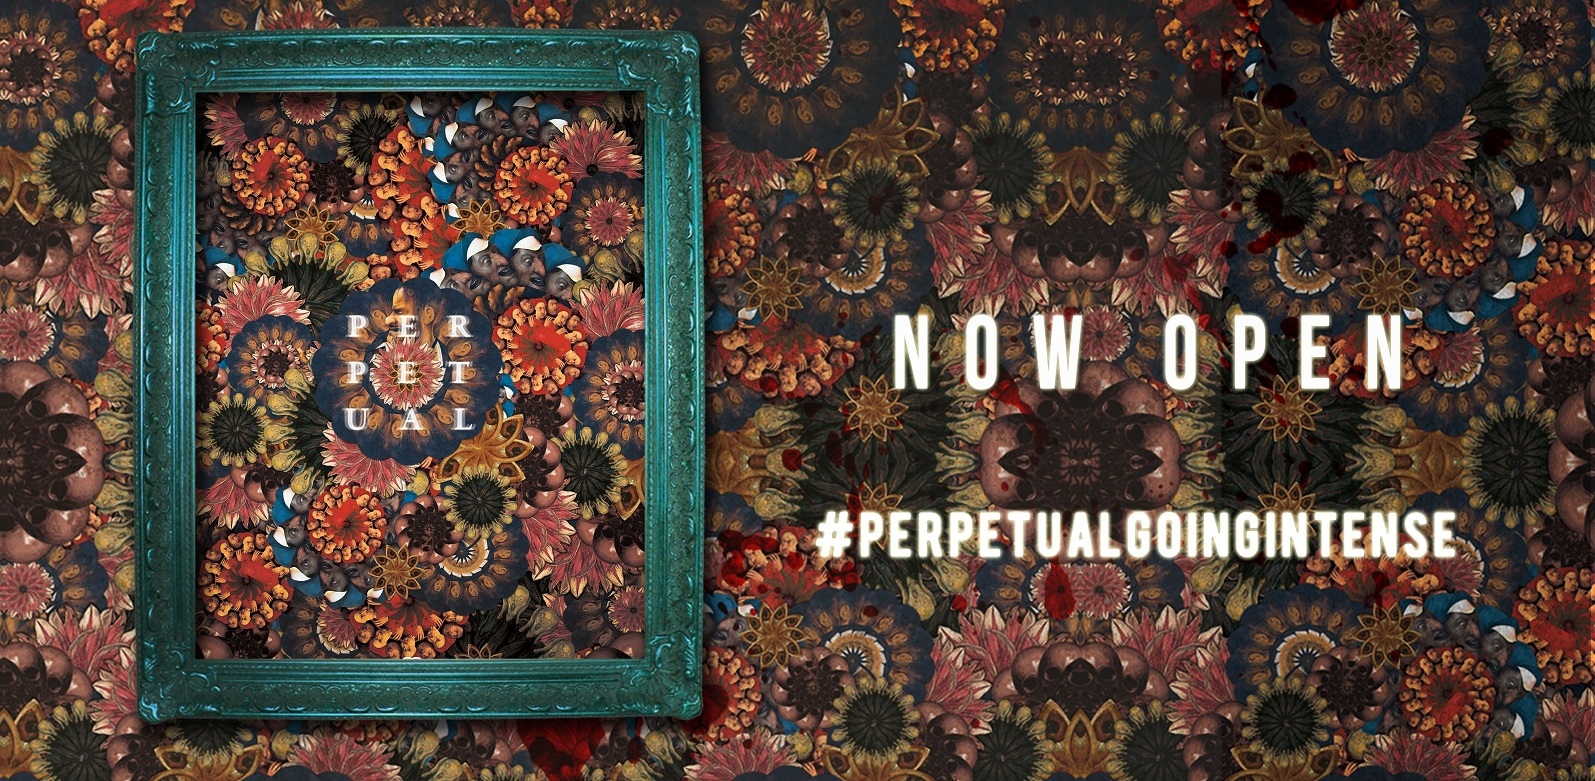 Perpetual now open